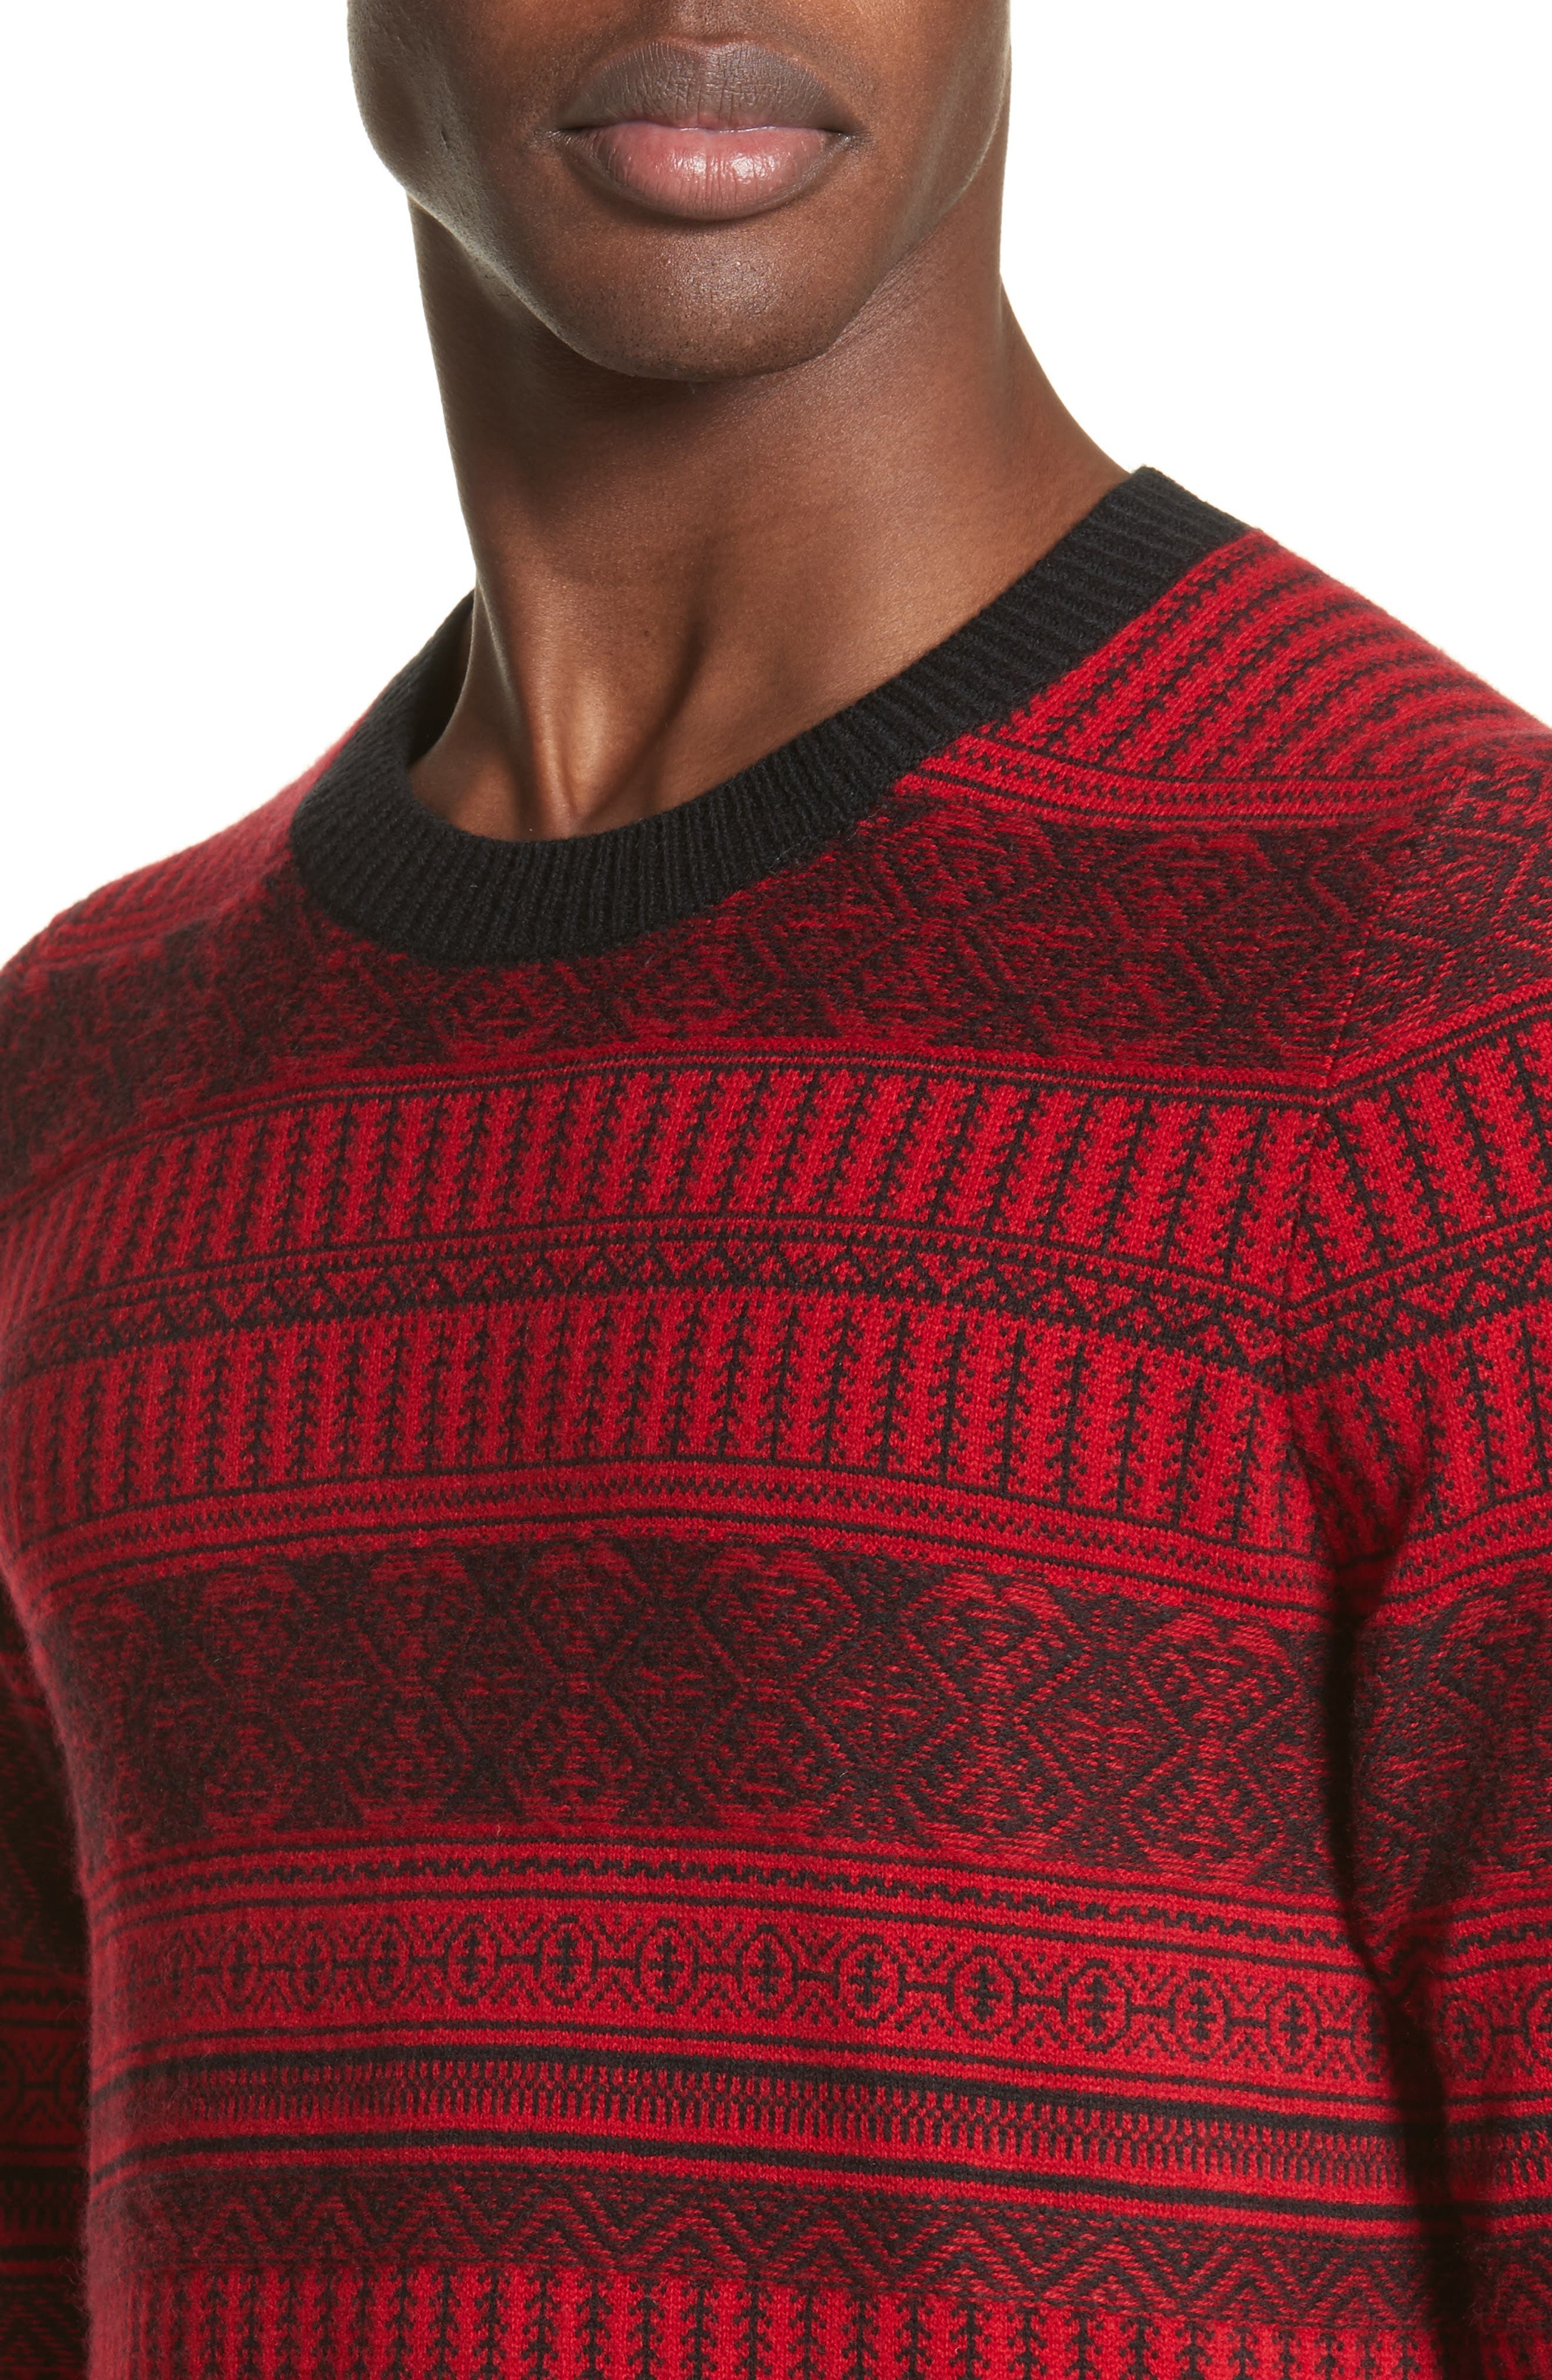 Tredway Wool & Cashmere Sweater,                             Alternate thumbnail 4, color,                             Military Red